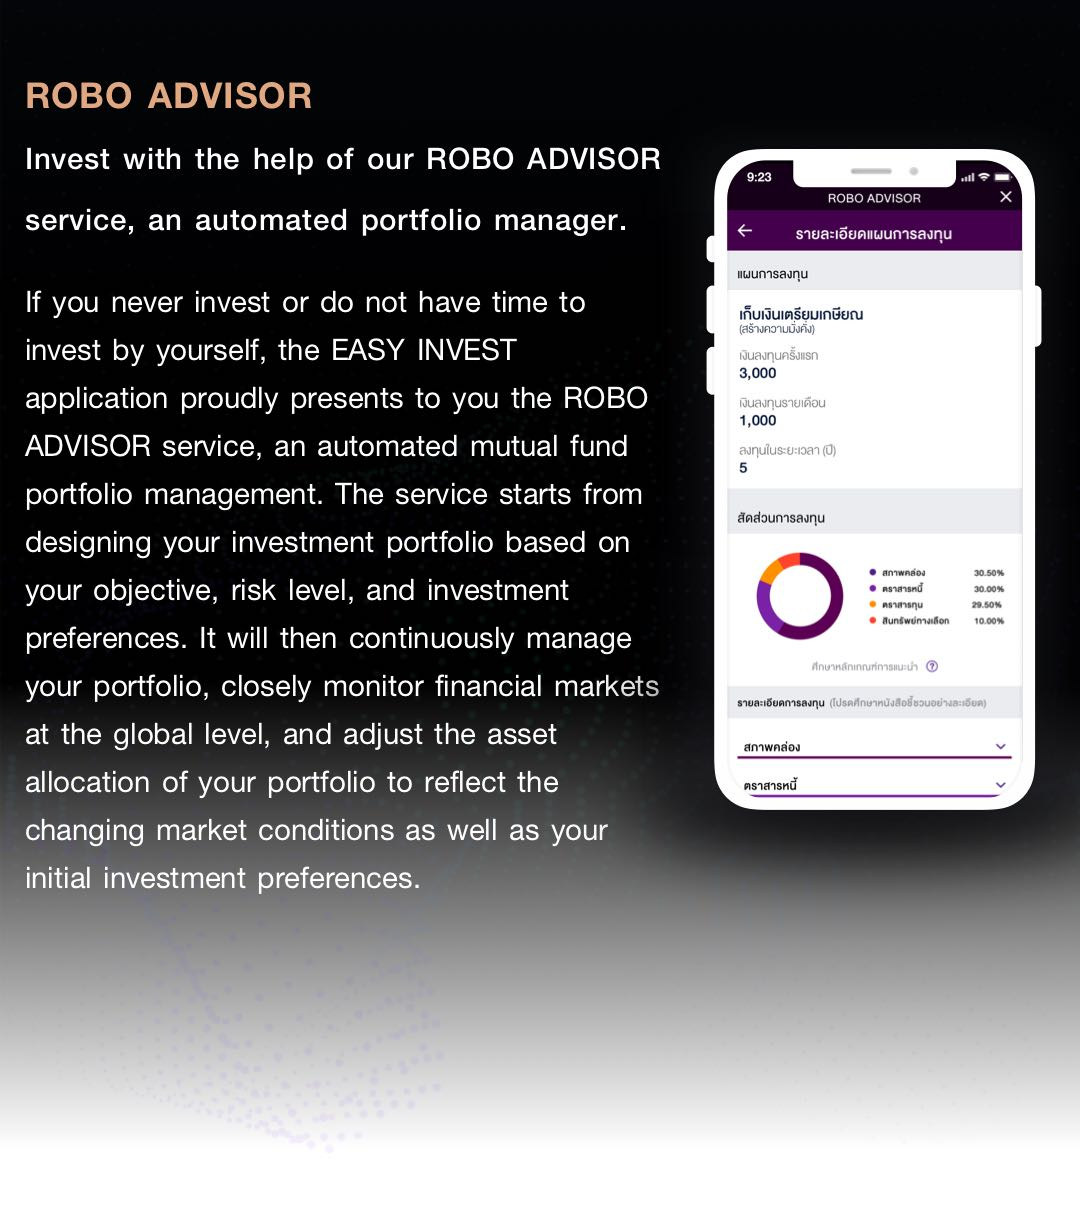 ROBO ADVISOR. Invest with the help of our ROBO ADVISOR ser-vice, an automated portfolio manager. The service will con-tinuously manage your portfo-lio, closely monitor financial markets, and adjust your portfo-lio accordingly.